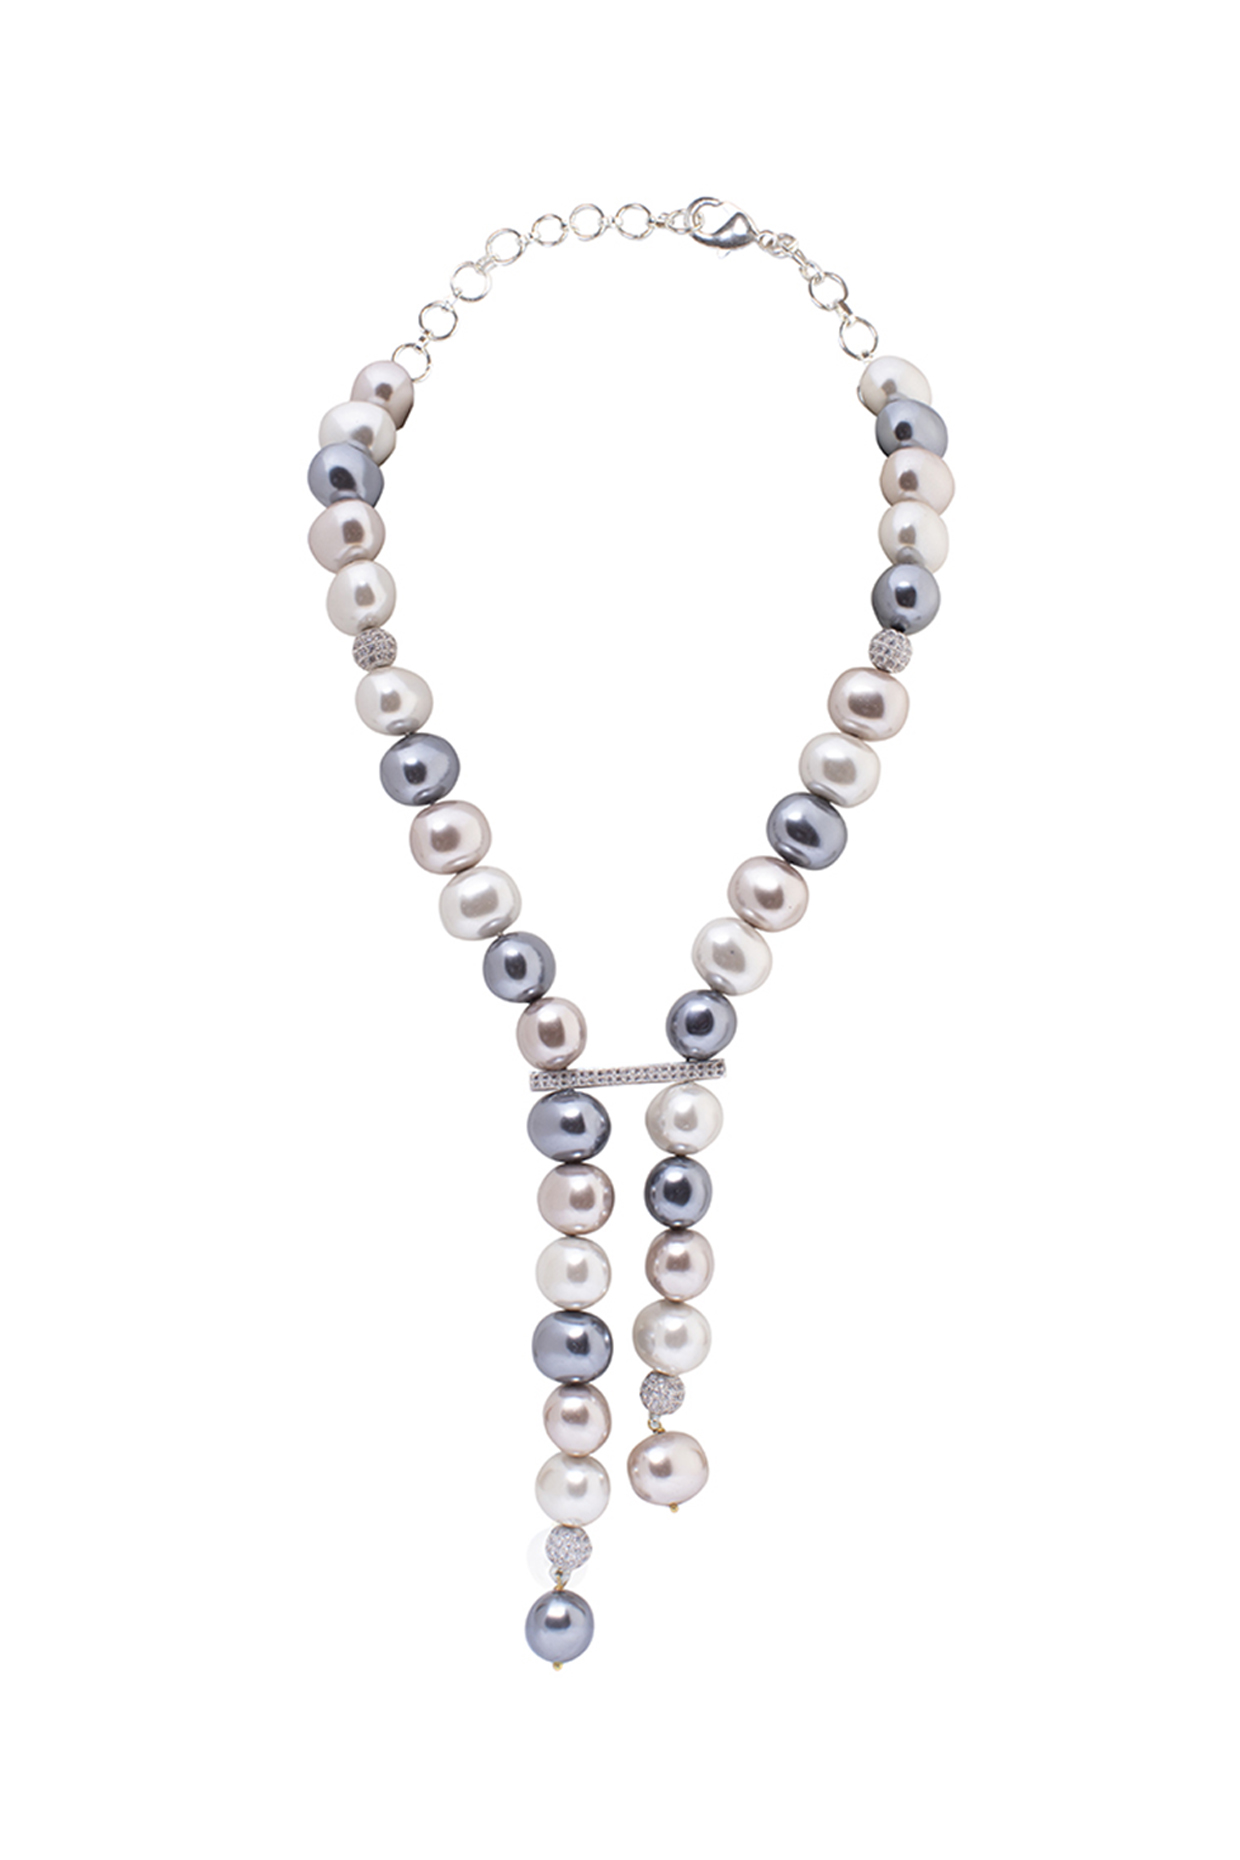 Gold Finish Pearl & Cubic Zirconia Necklace by Joules By Radhika